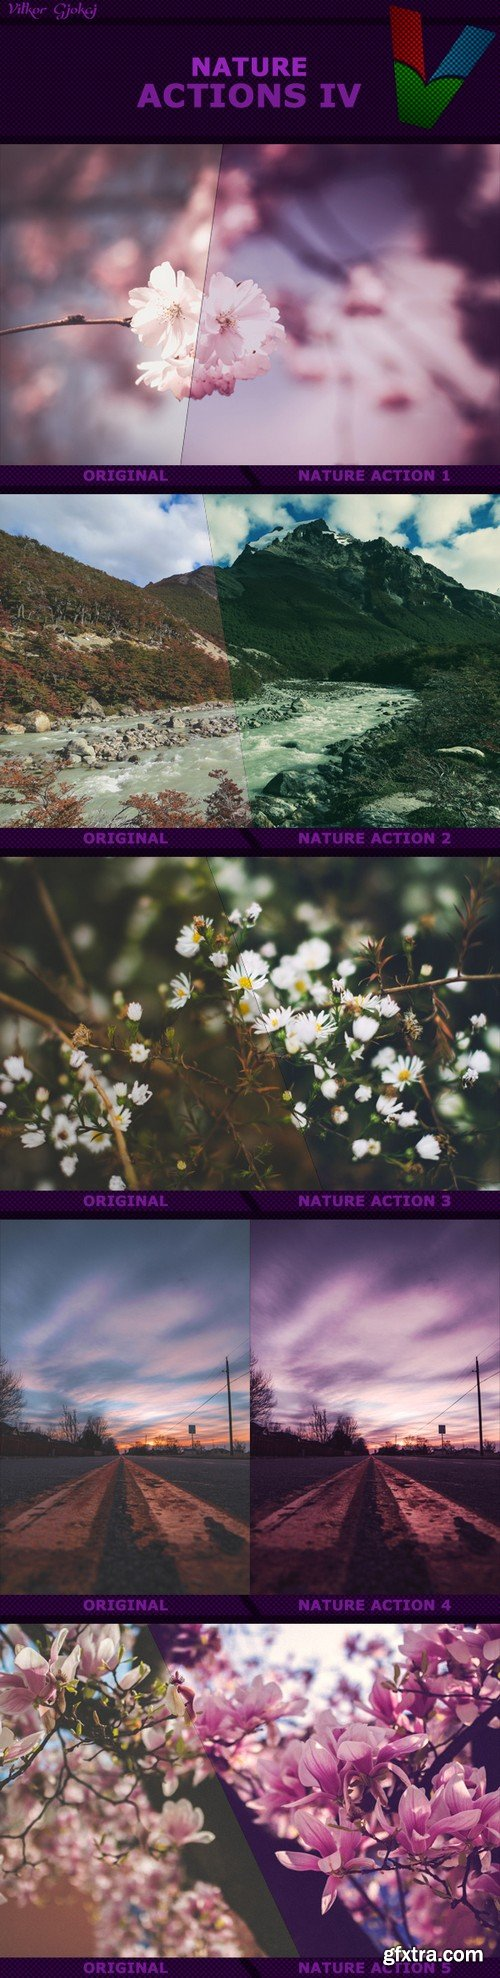 Graphicriver - Nature Actions IV 15758444